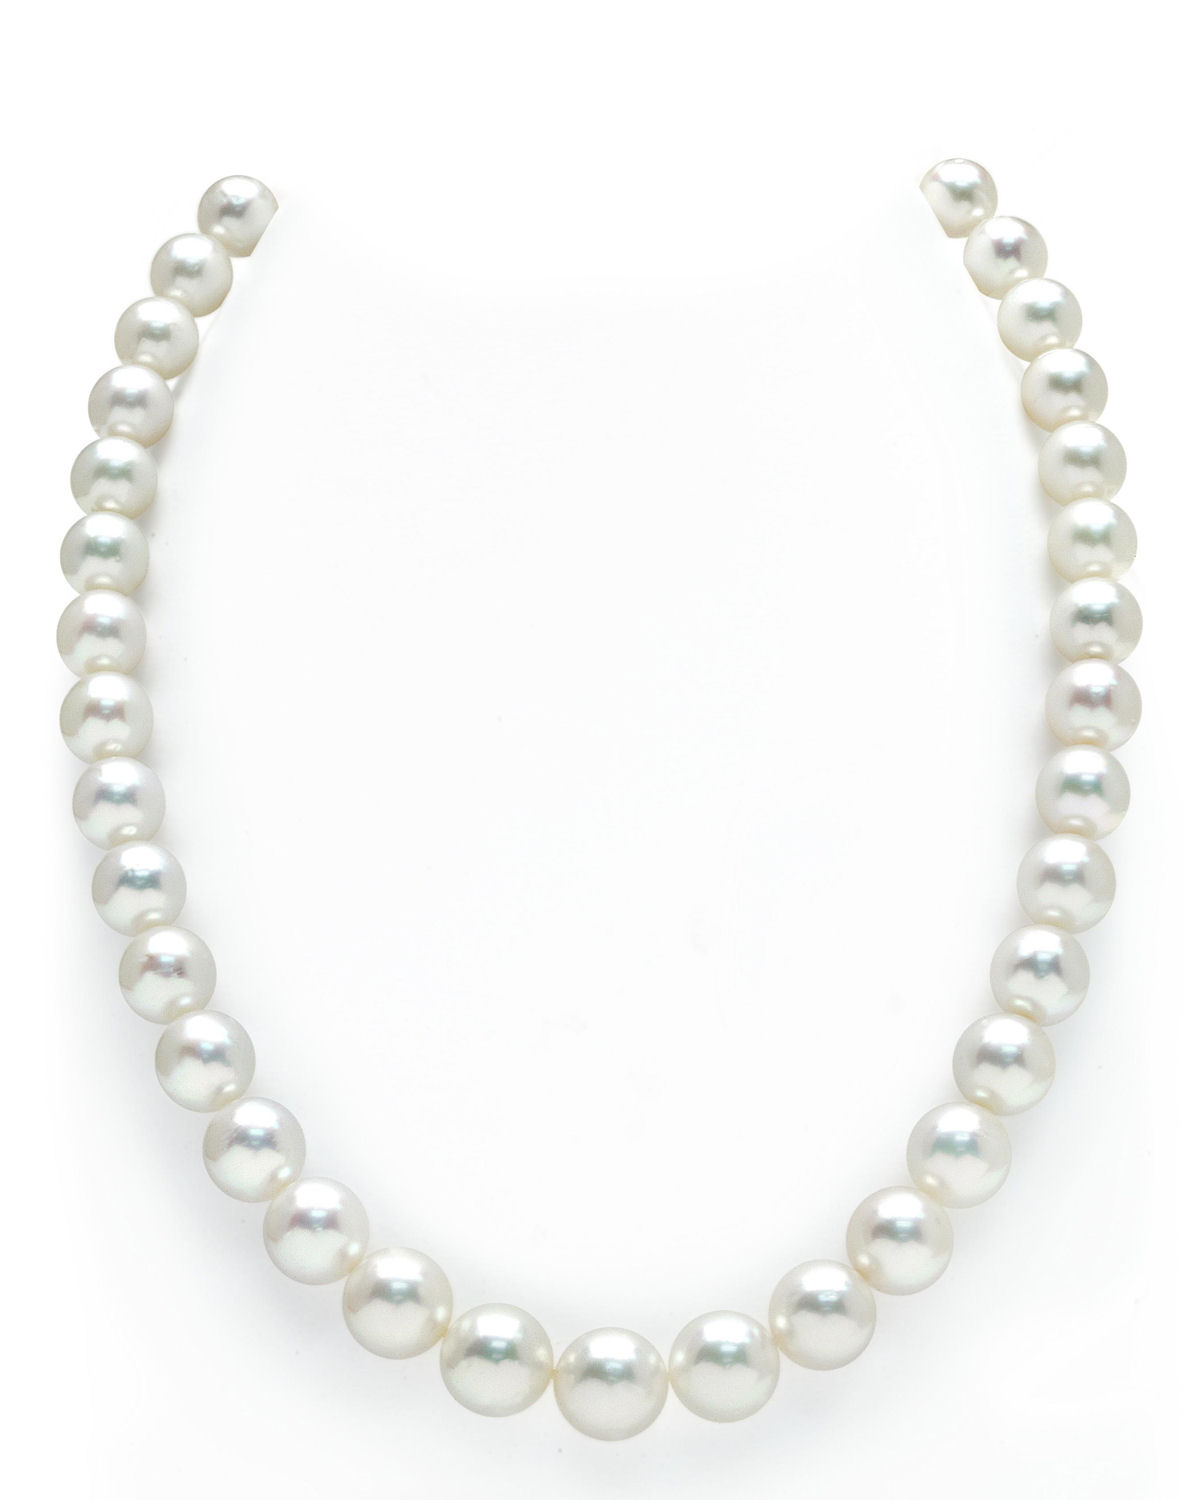 14K Gold 9-12mm Australian White South Sea Cultured Pearl Necklace AAAA Quality by The Pearl Source